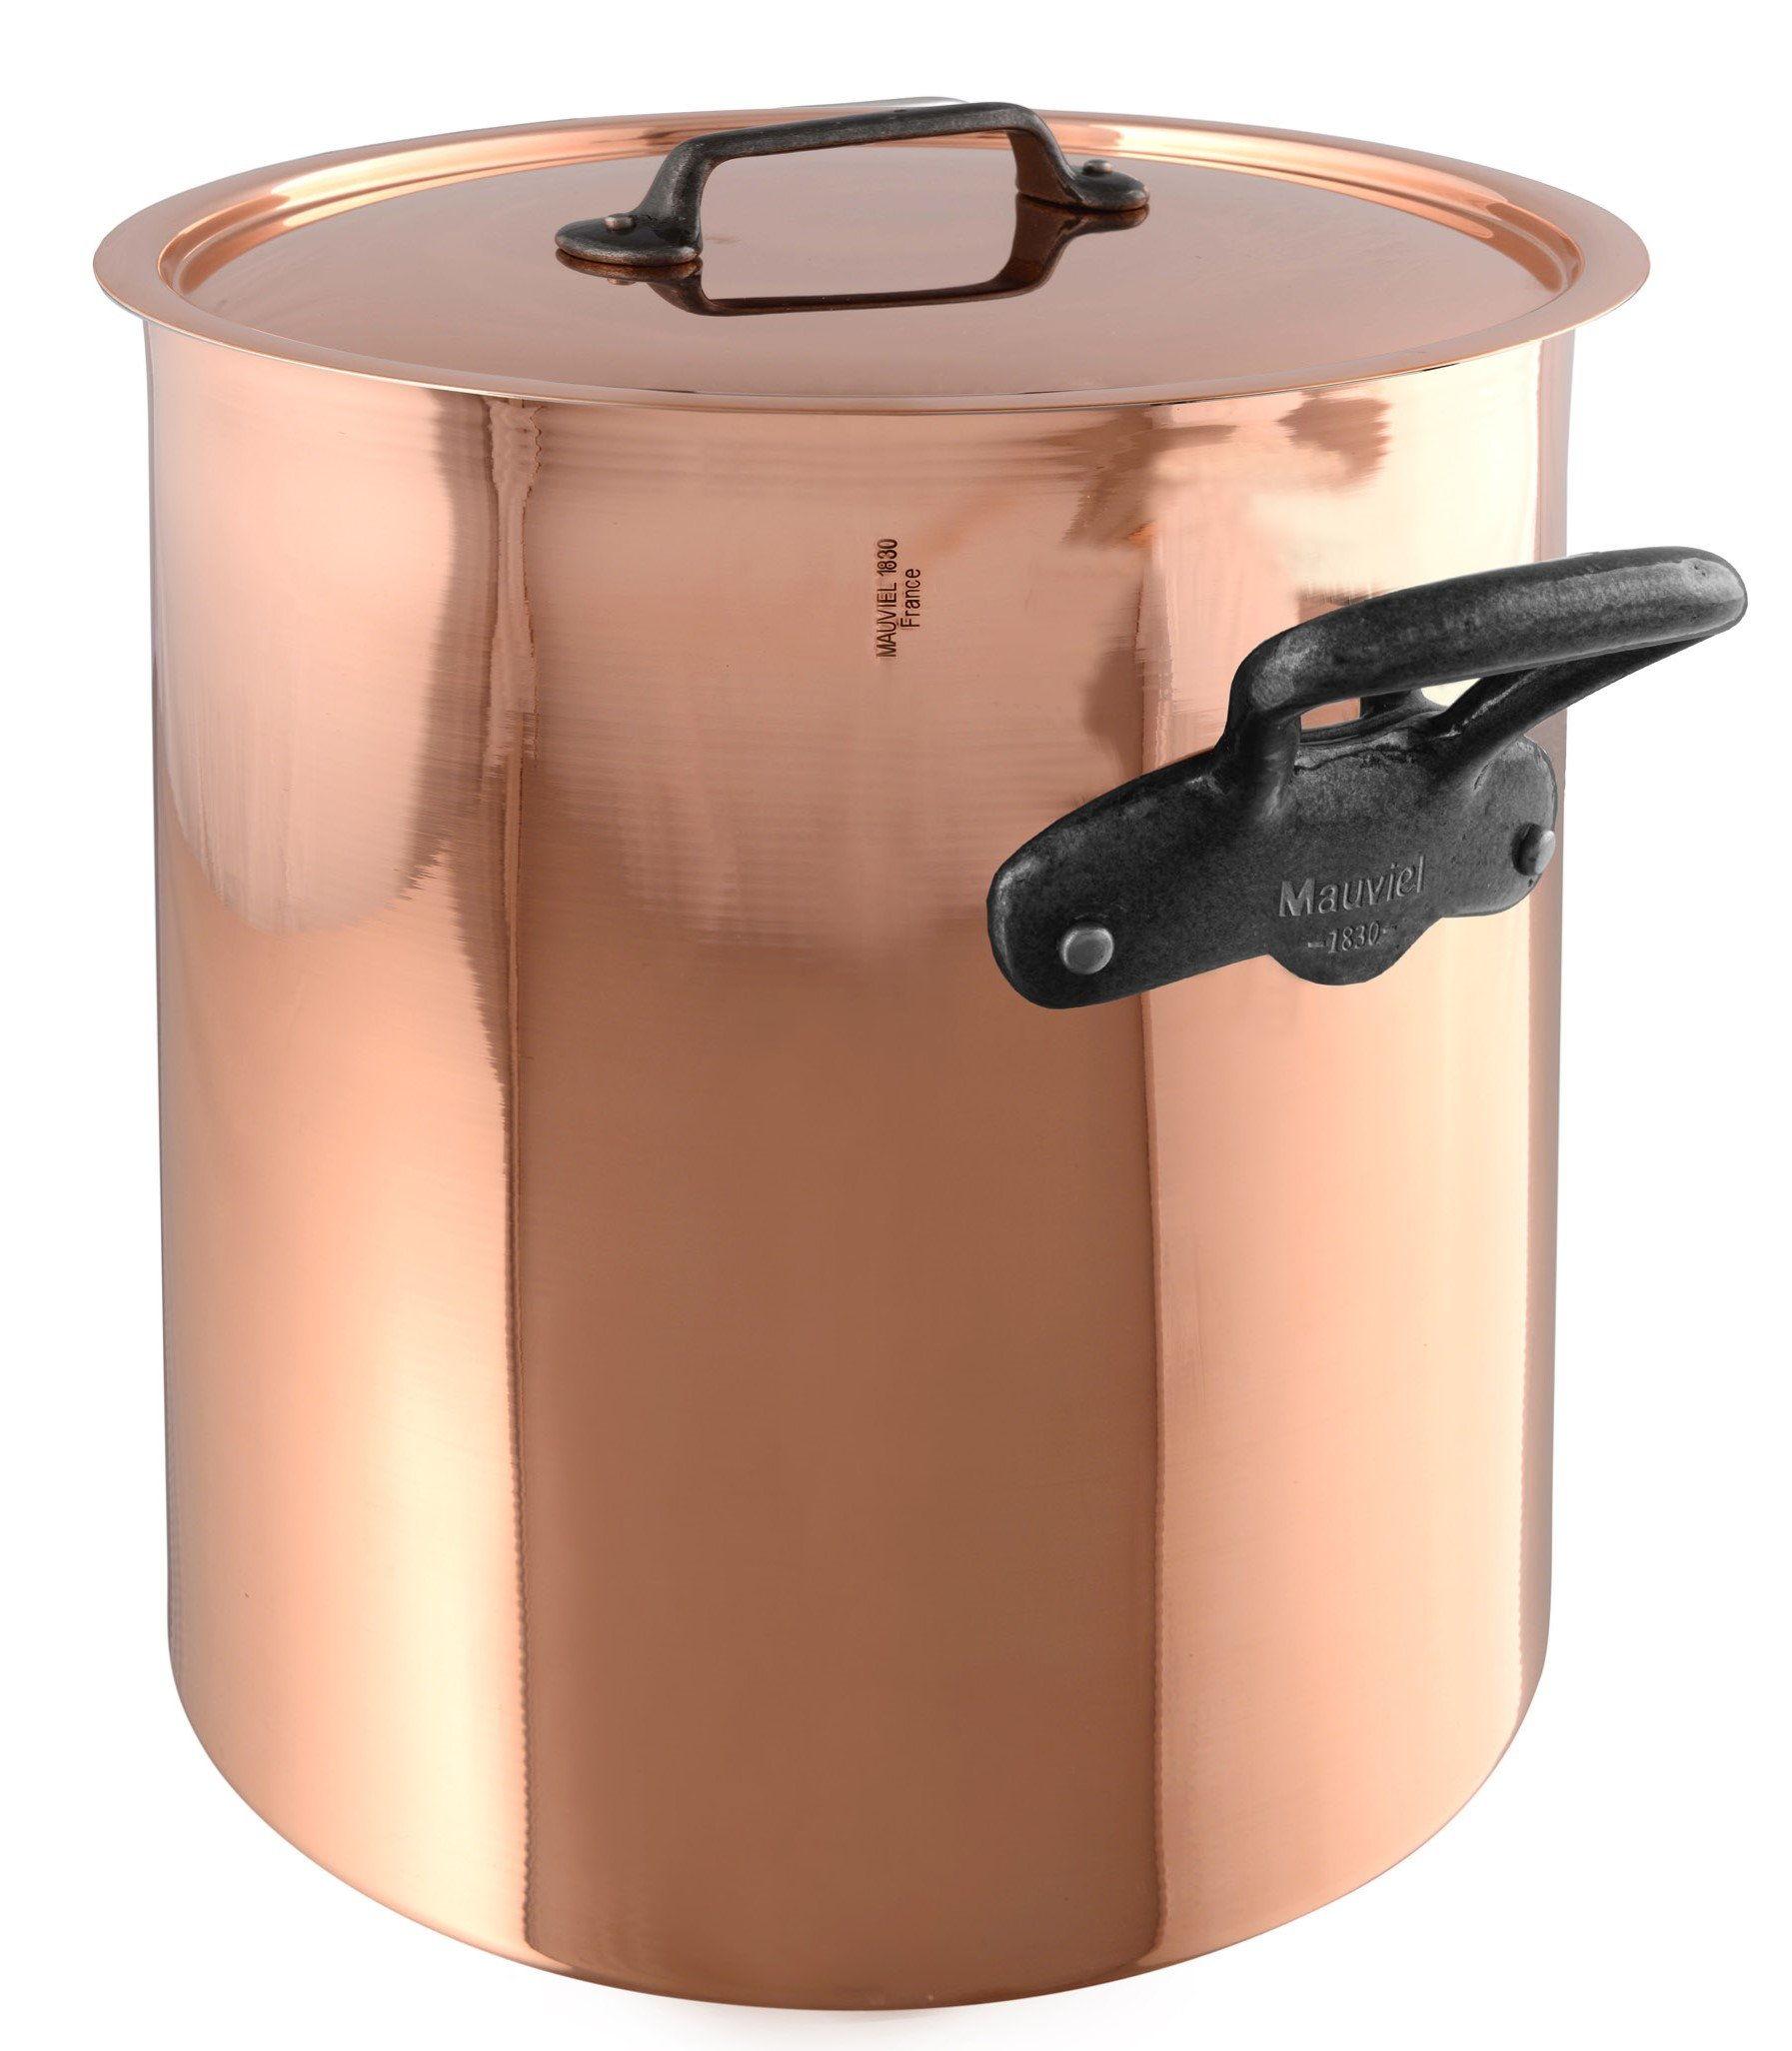 Mauviel M'Heritage M150C 6482.25 Copper Tinned Lined Stockpot with Lid. 11L/11.2 quart 24 cm/9.5'' with Cast Stainless Steel Iron Eletroplated  Handle